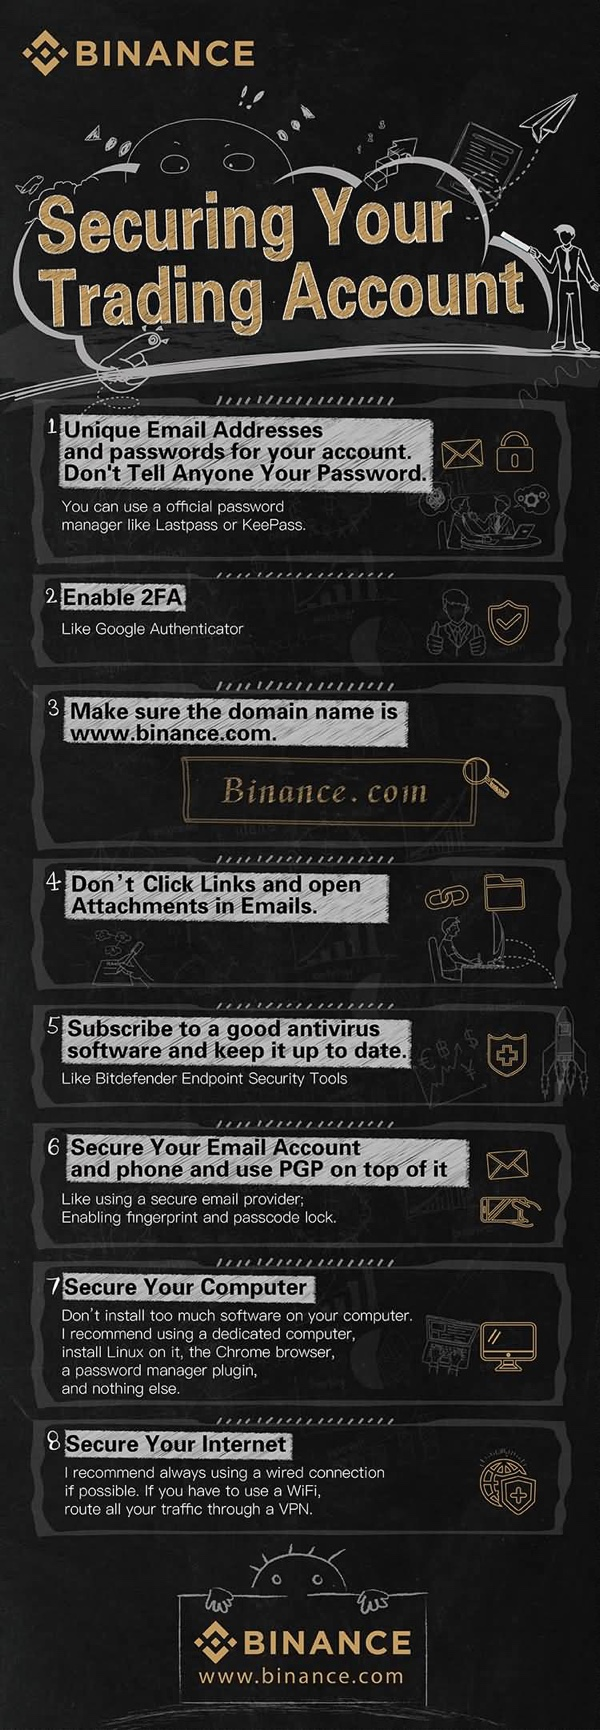 Securing Your CryptoCurrency Trading Account infographic